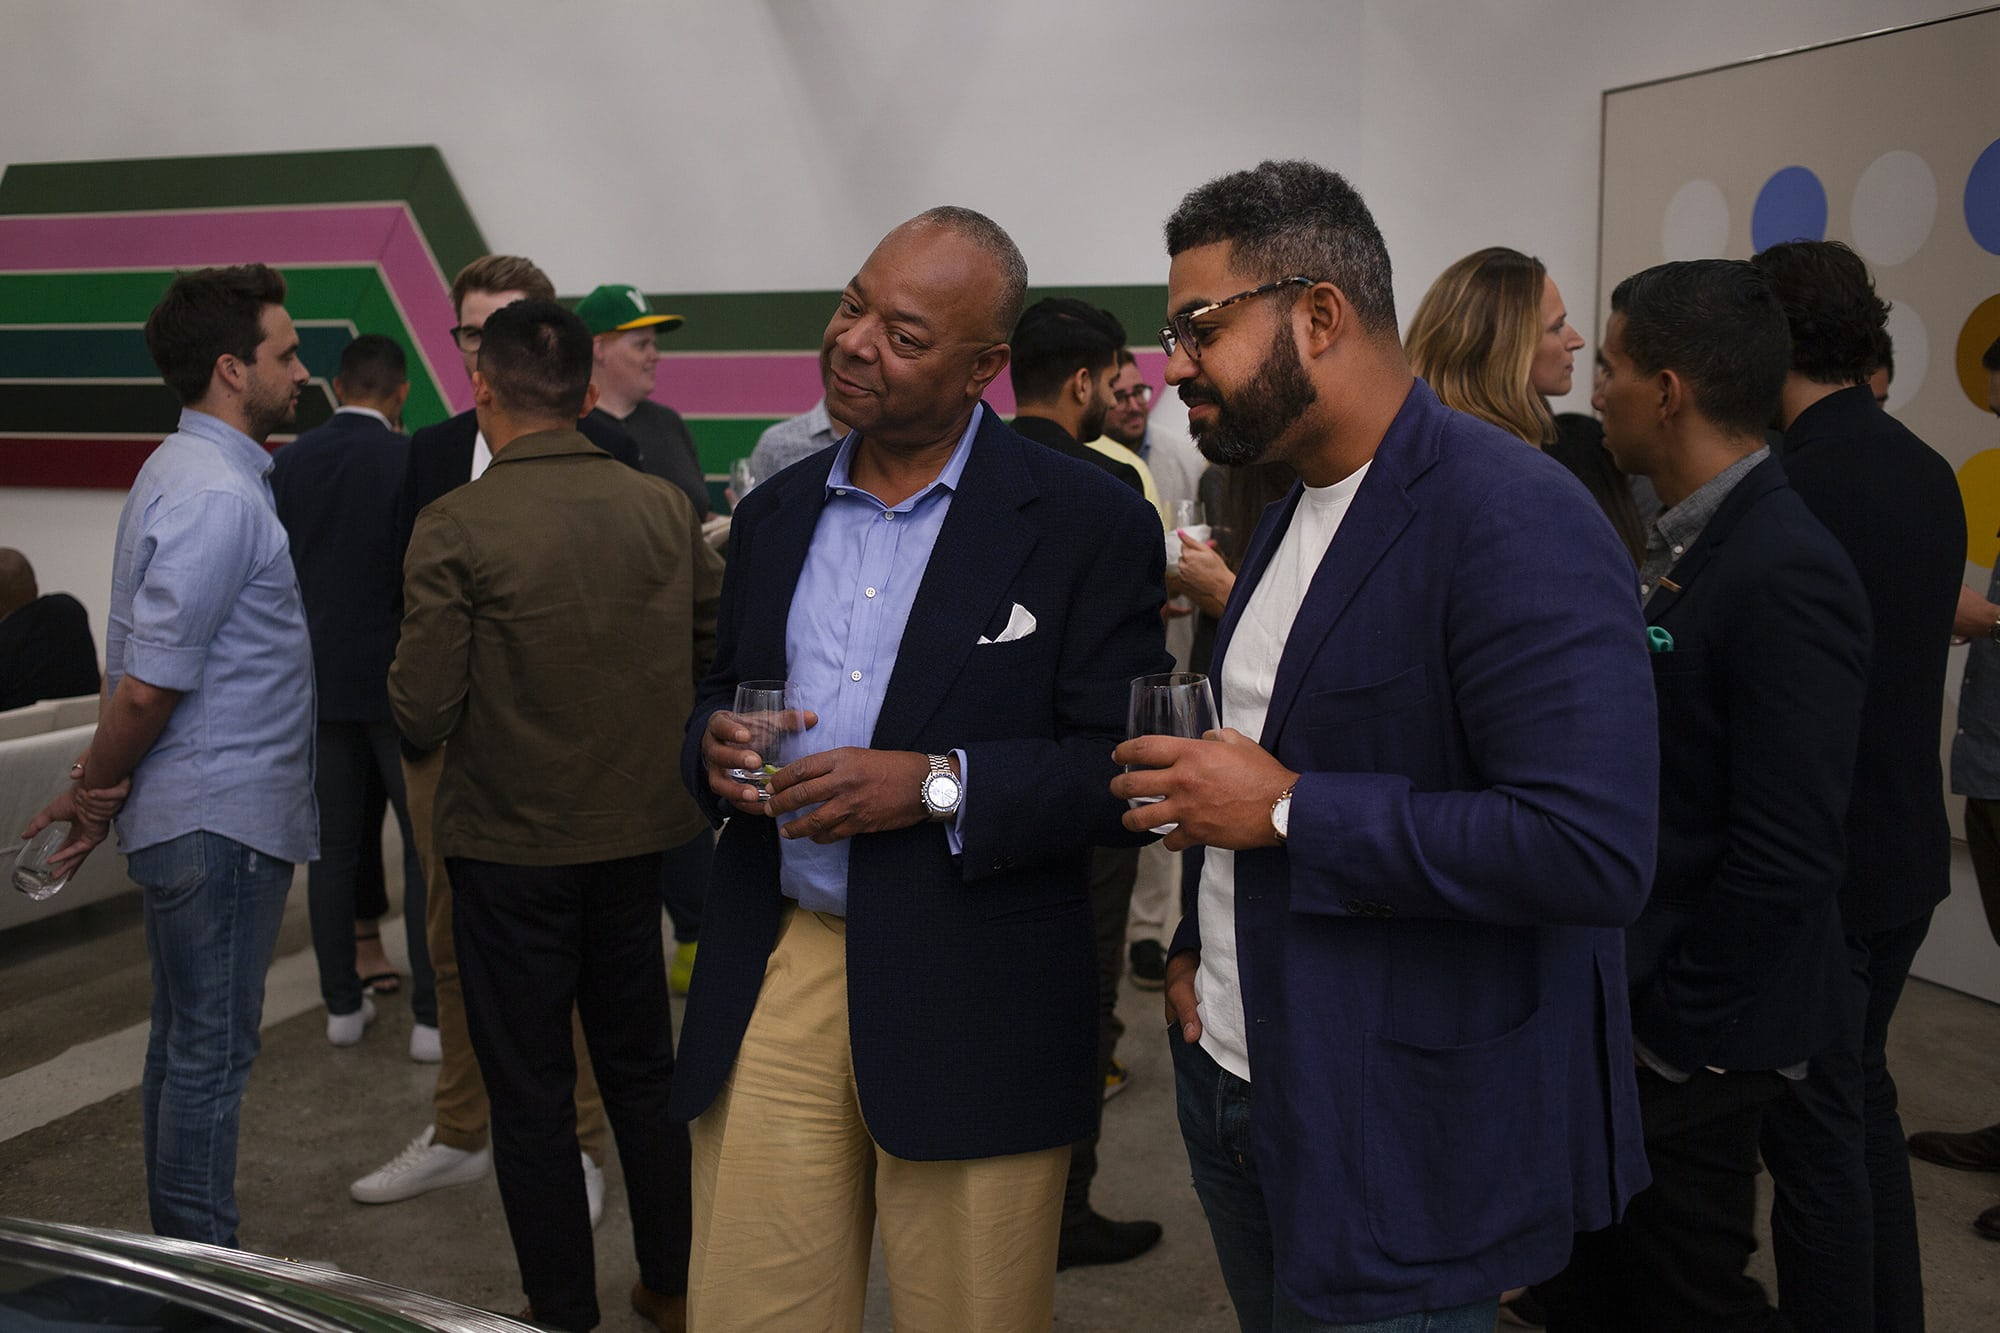 Photo Report: The Watches And Cars Of The HODINKEE Pop-Up At The UTA Artist Space In Los Angeles  3H0A0507 copy